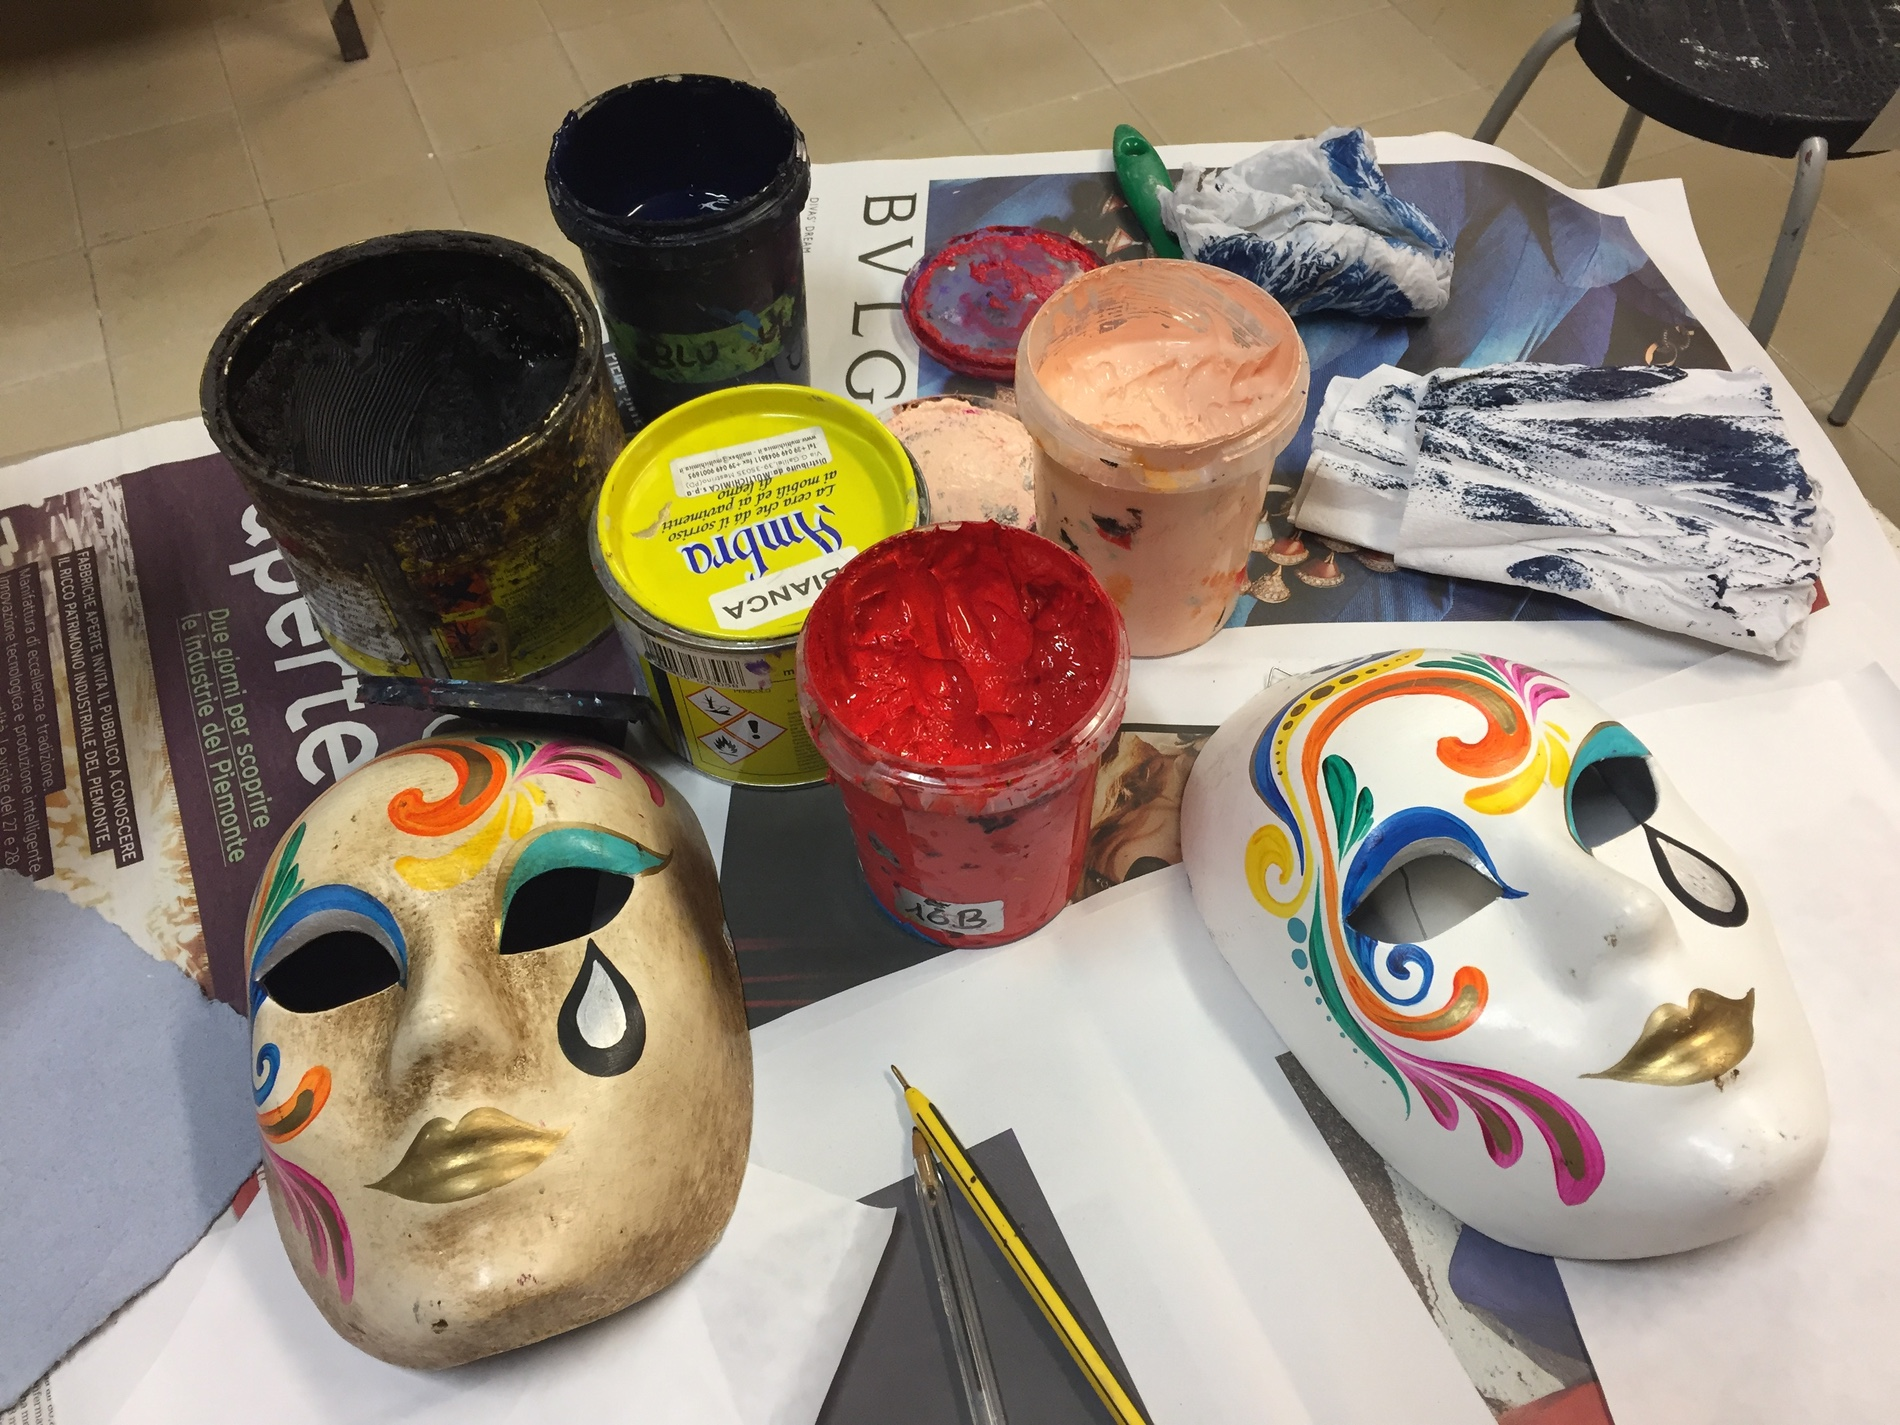 Paints and masks at Ca' Macana Carnevale Mardi Gras mask workshop in Venice, Italy